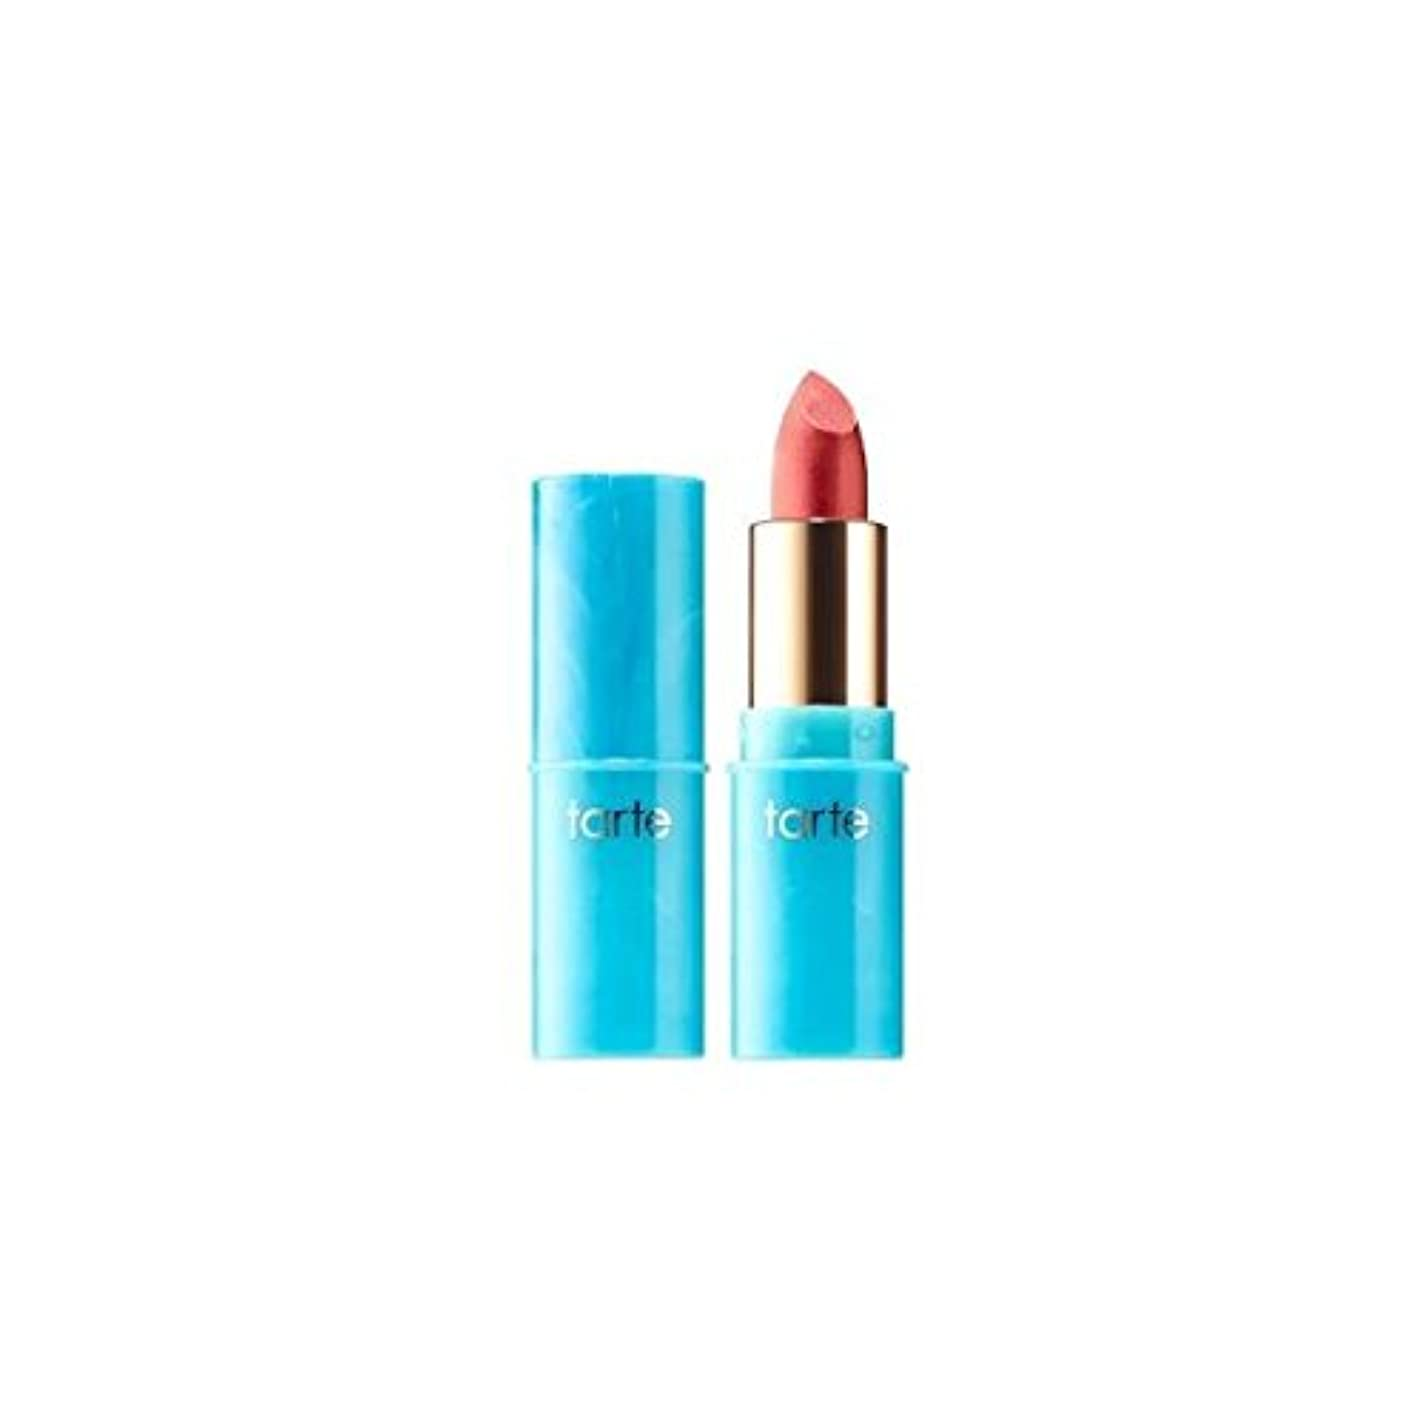 責める威信無駄tarteタルト リップ Color Splash Lipstick - Rainforest of the Sea Collection Metallic finish